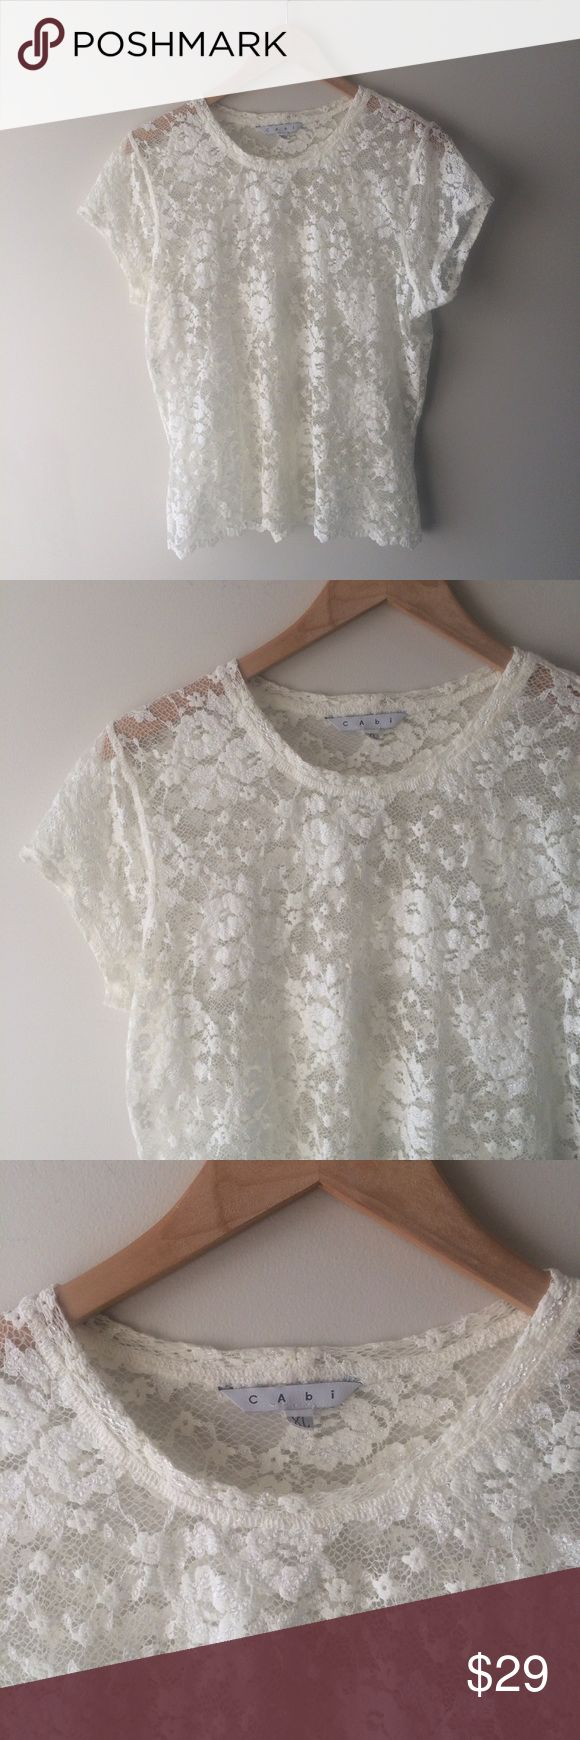 CAbi White Lace Crochet Short Sleeve Top Beautiful and elegant, this lace topper is absolutely lovely. White cream Lace, short sleeve, goes over any Tank. Size XL, excellent condition. CAbi Tops Tees - Short Sleeve